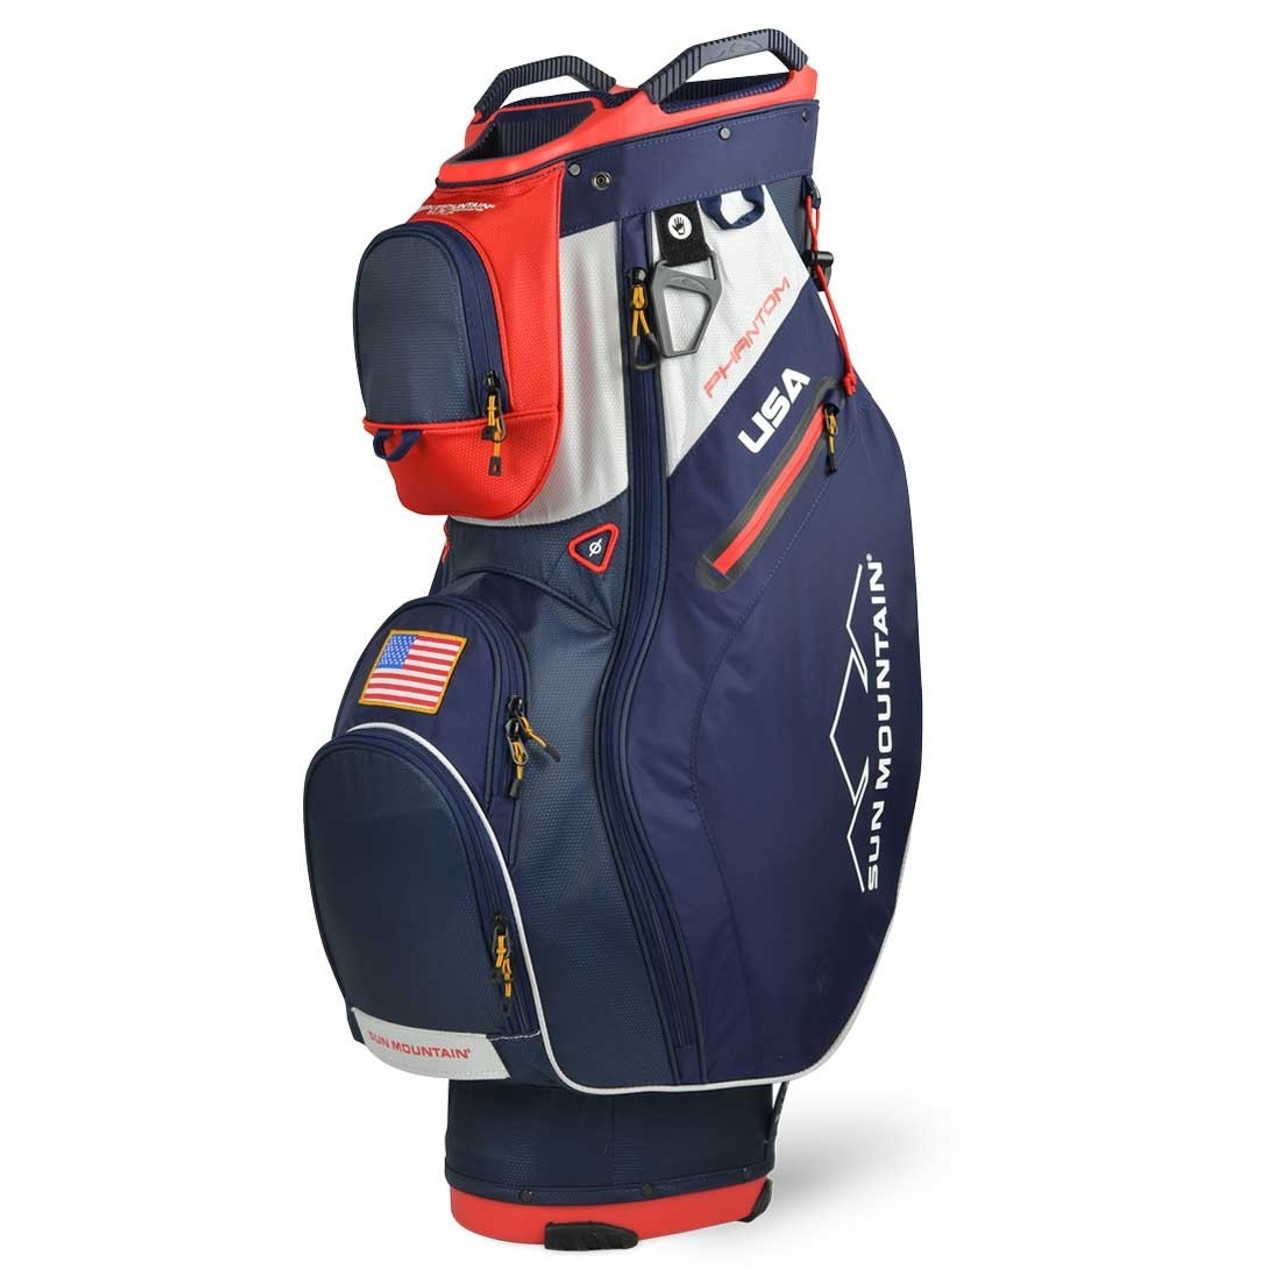 Sun Mountain Phantom Cart Bag - Navy / Red / White